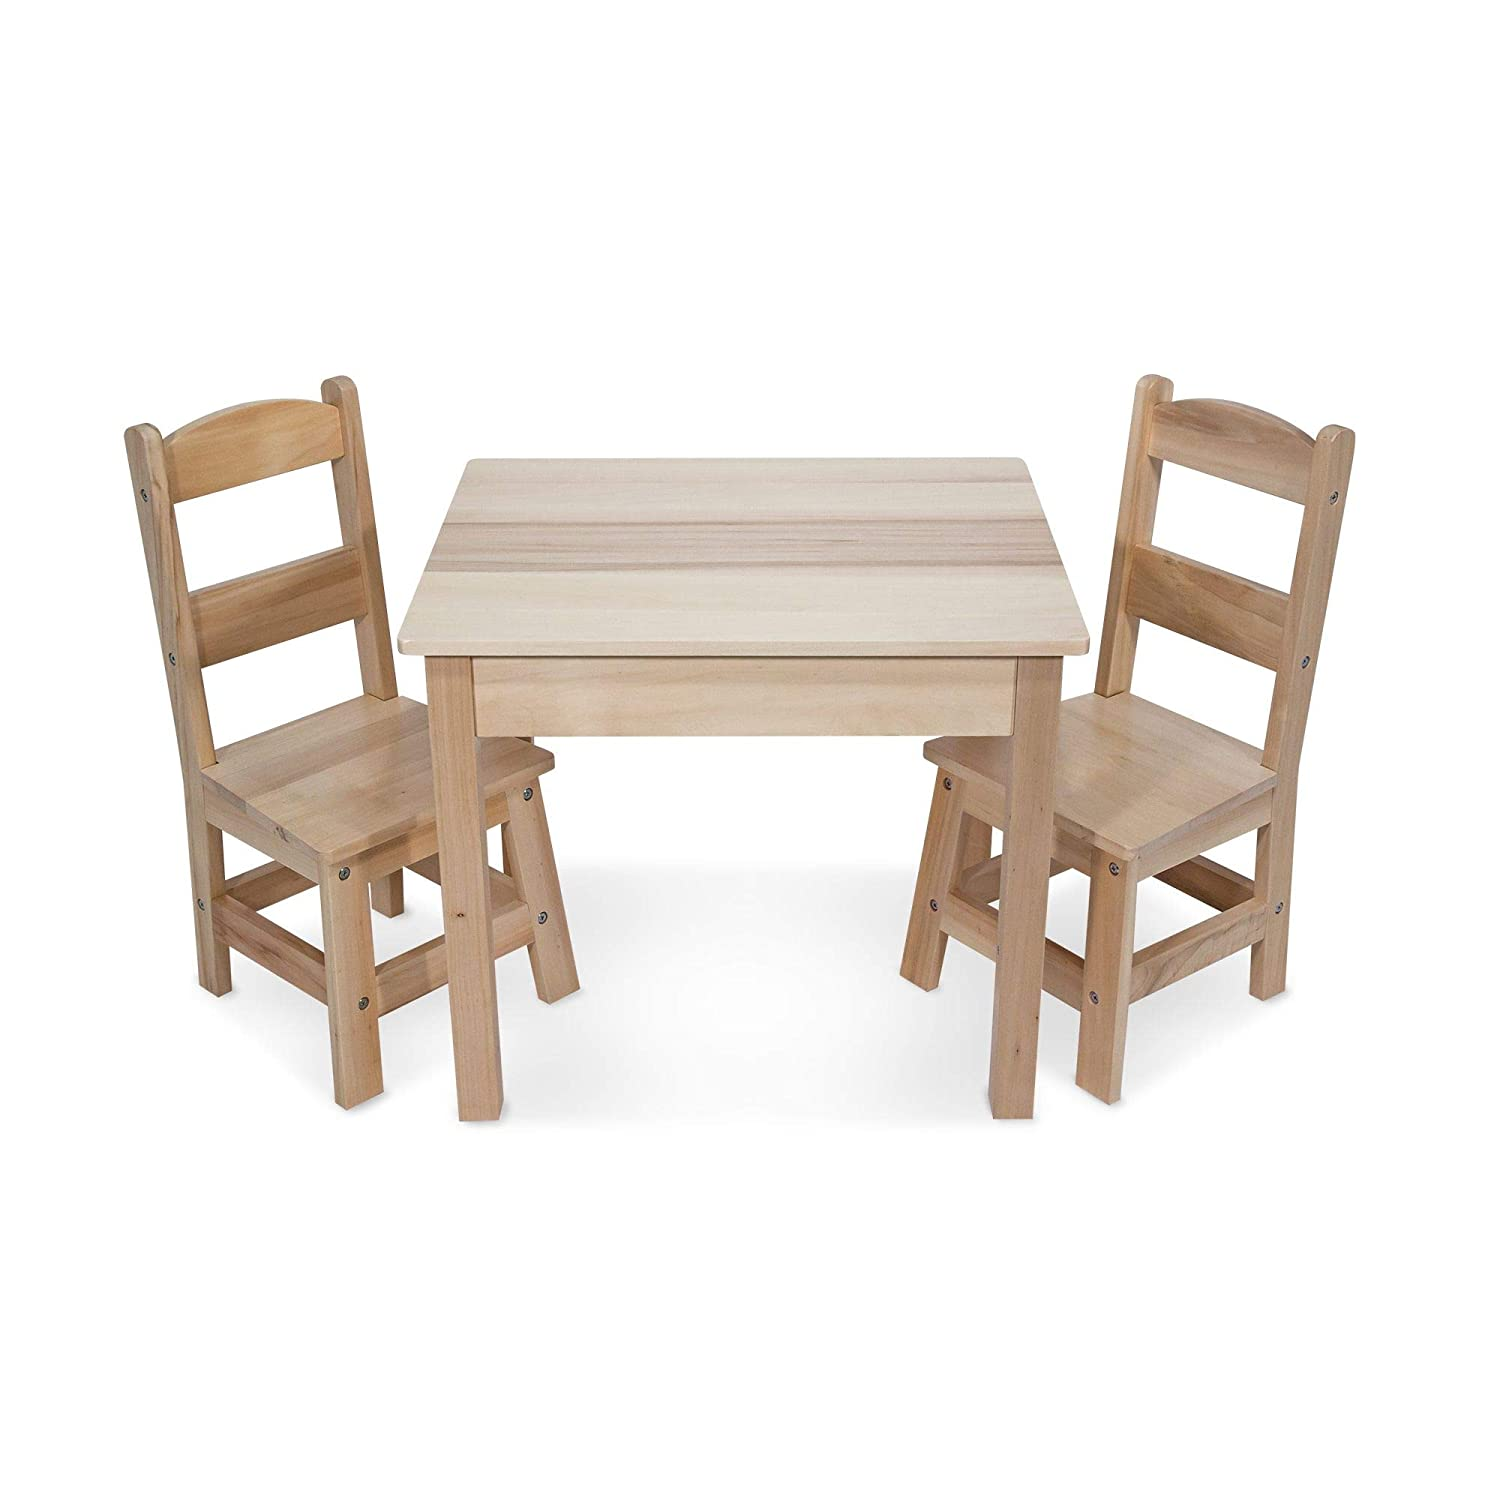 "Melissa & Doug Solid Wood Table & Chairs, Kids Furniture, Sturdy Wooden Furniture, 3-Piece Set, 20"" H x 23.5"" W x 20.5"" L"